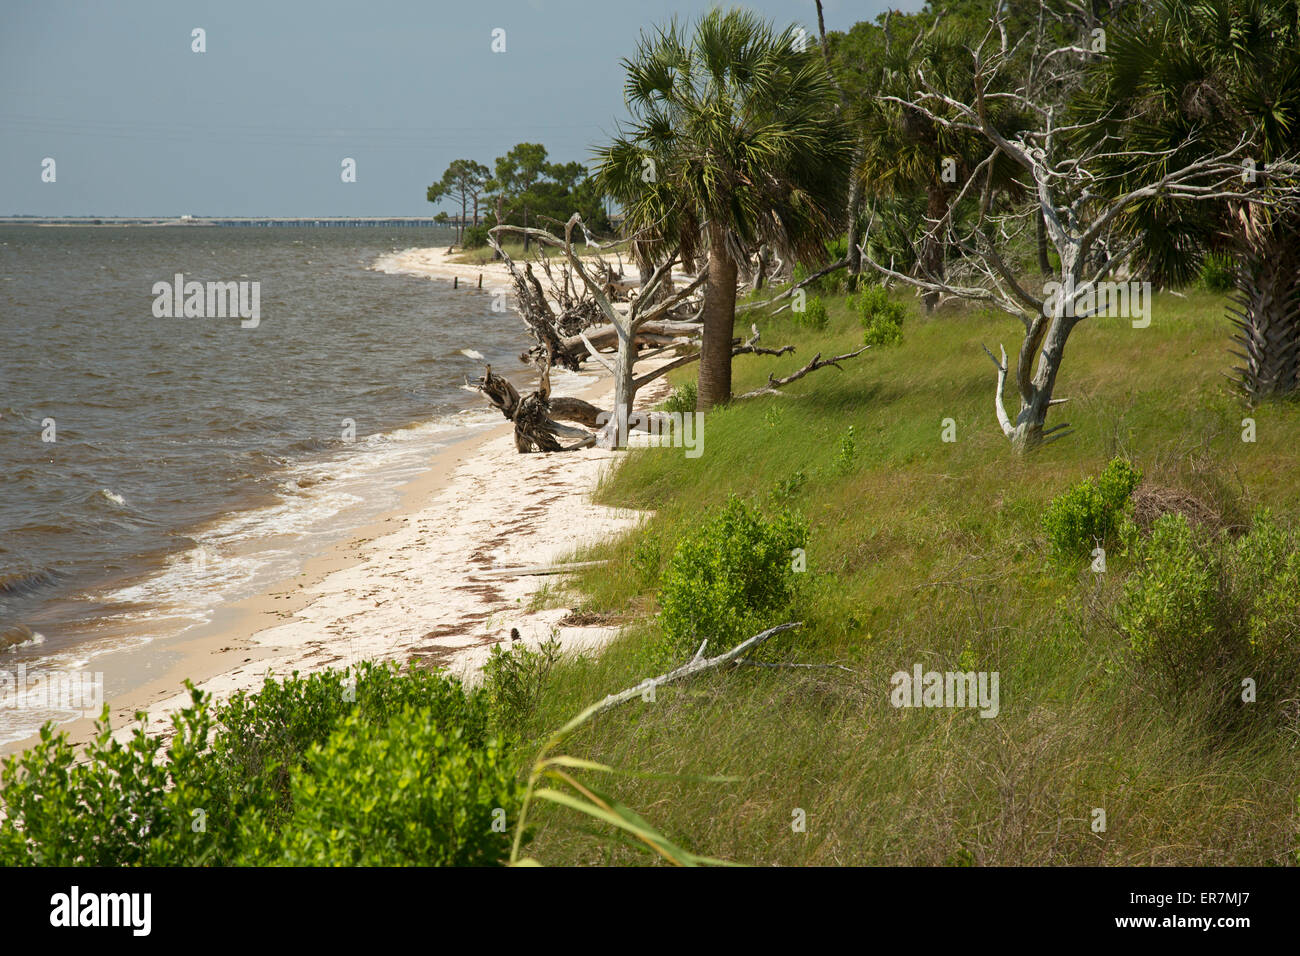 Eastpoint, Florida - The beach at Apalachicola National Estuarine Research Reserve. - Stock Image